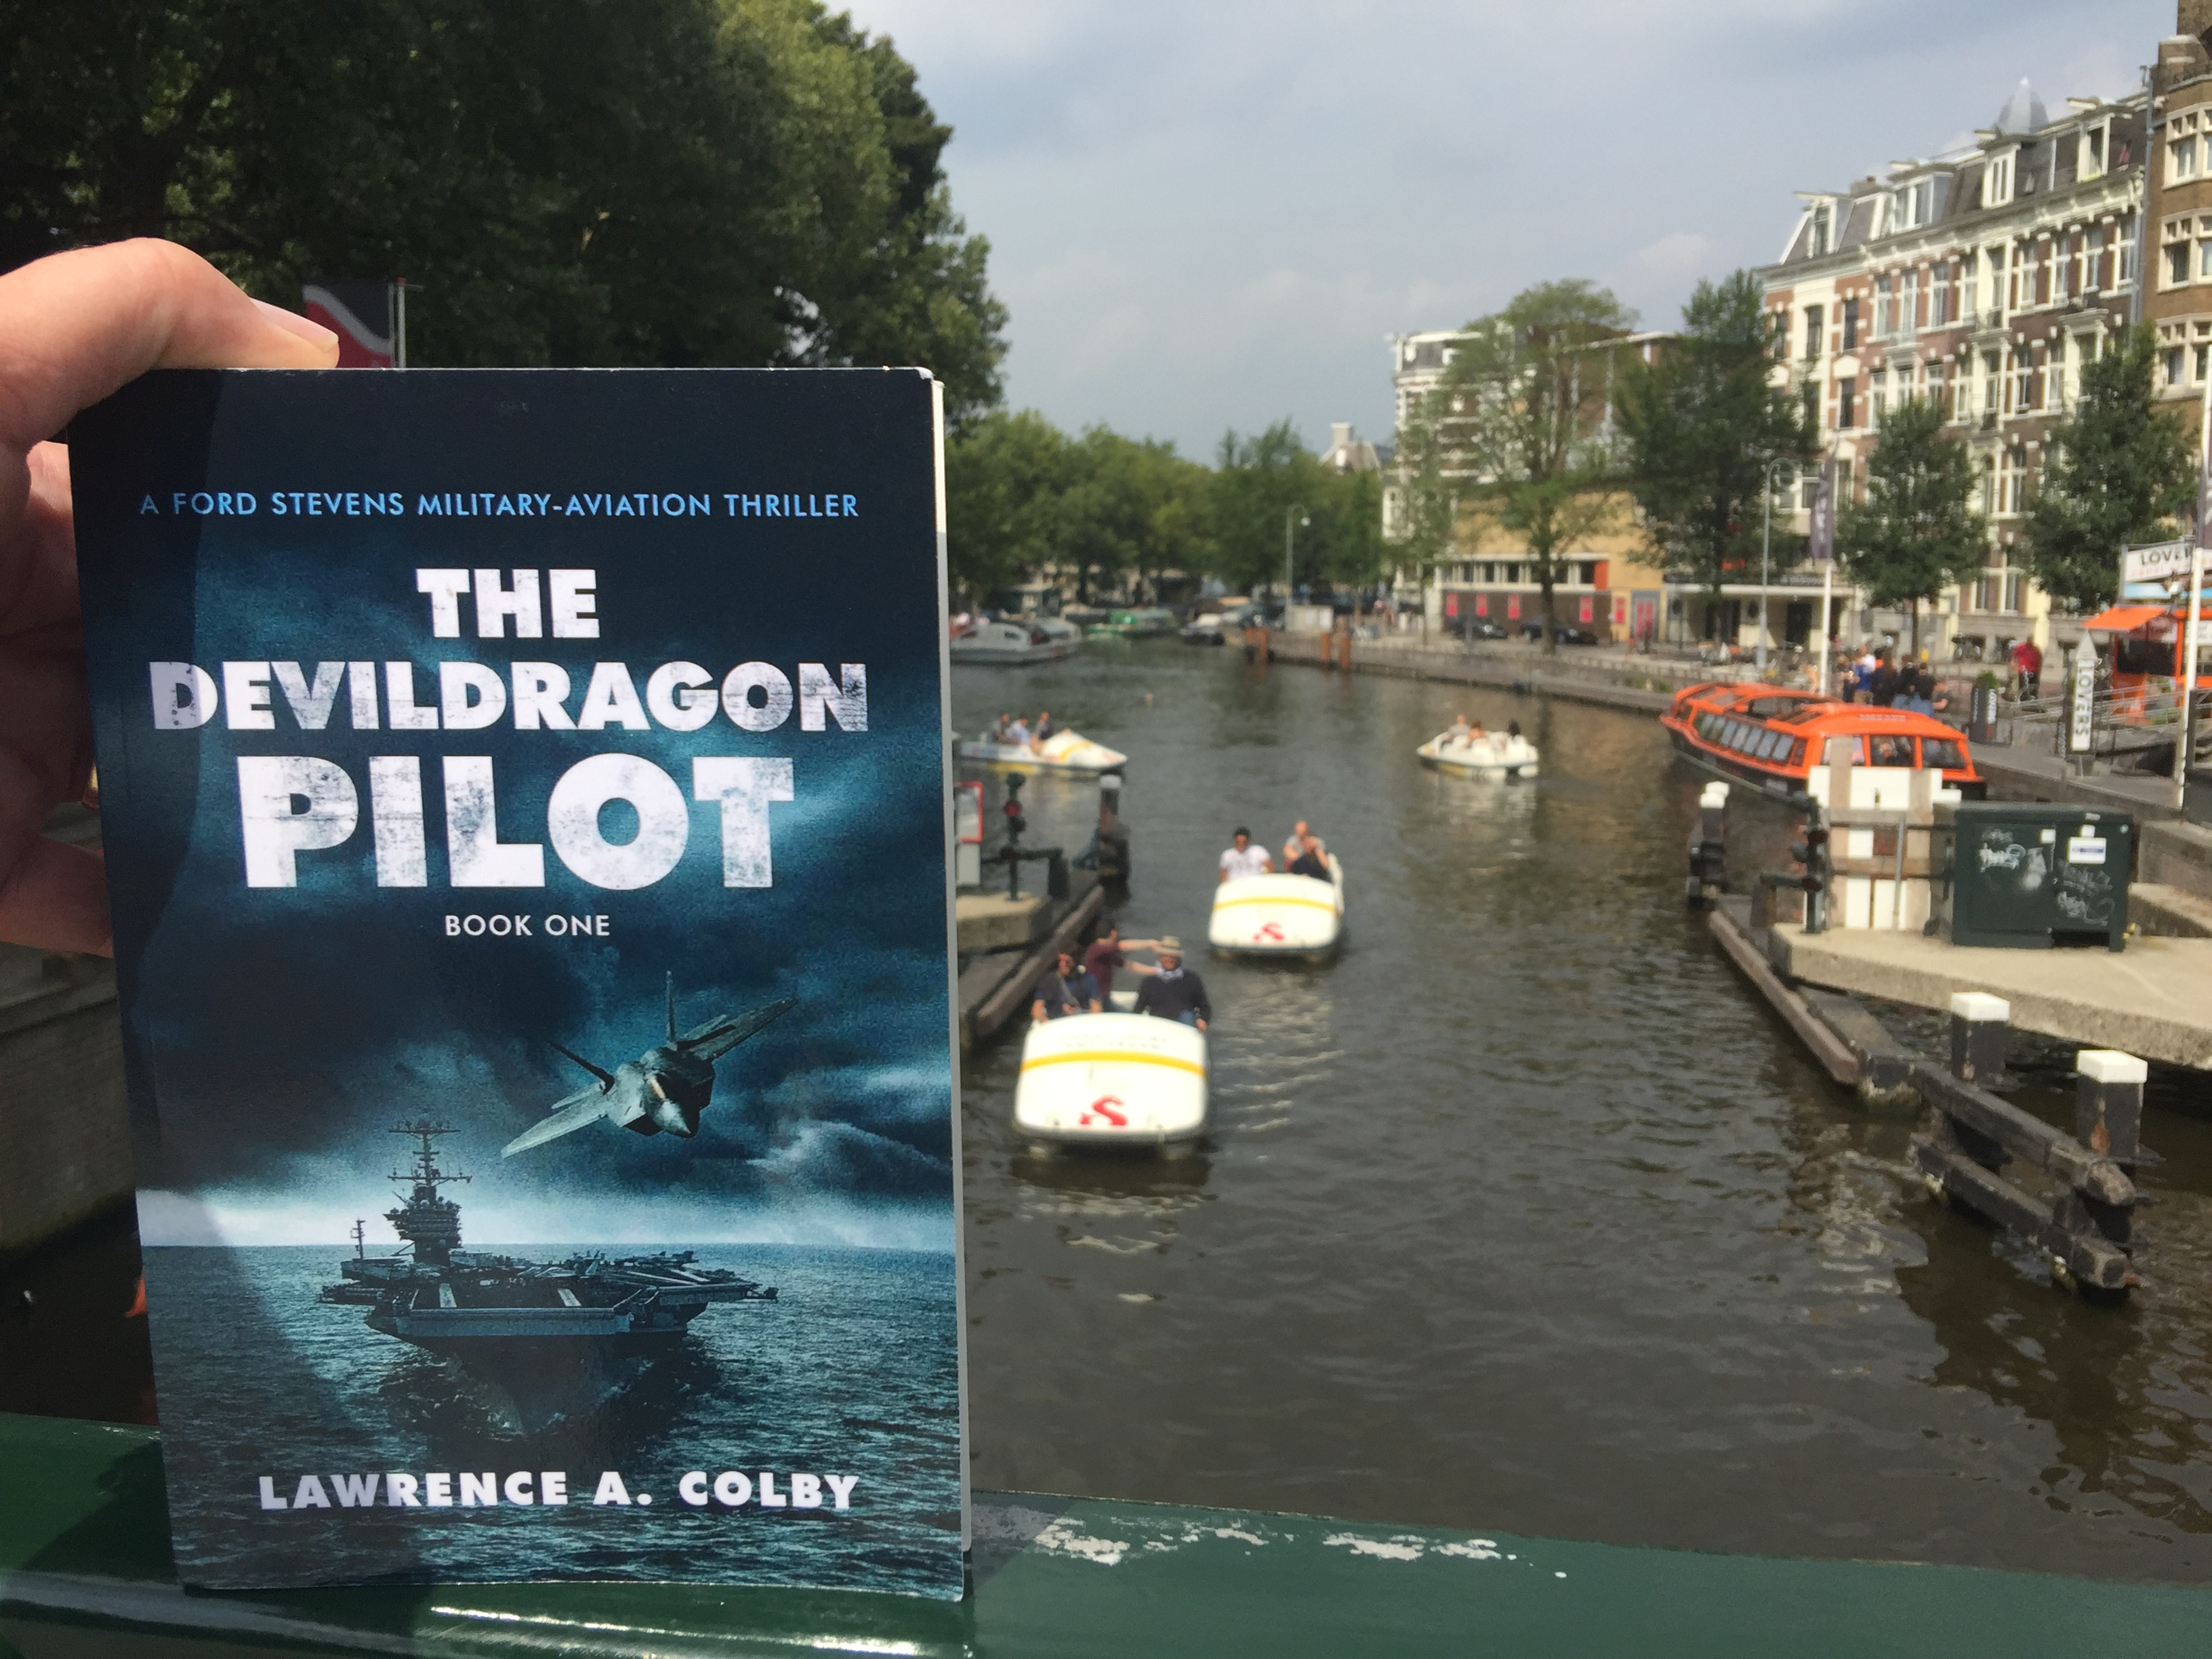 More Readers Post Pictures to The Devil Dragon Pilot Book Site